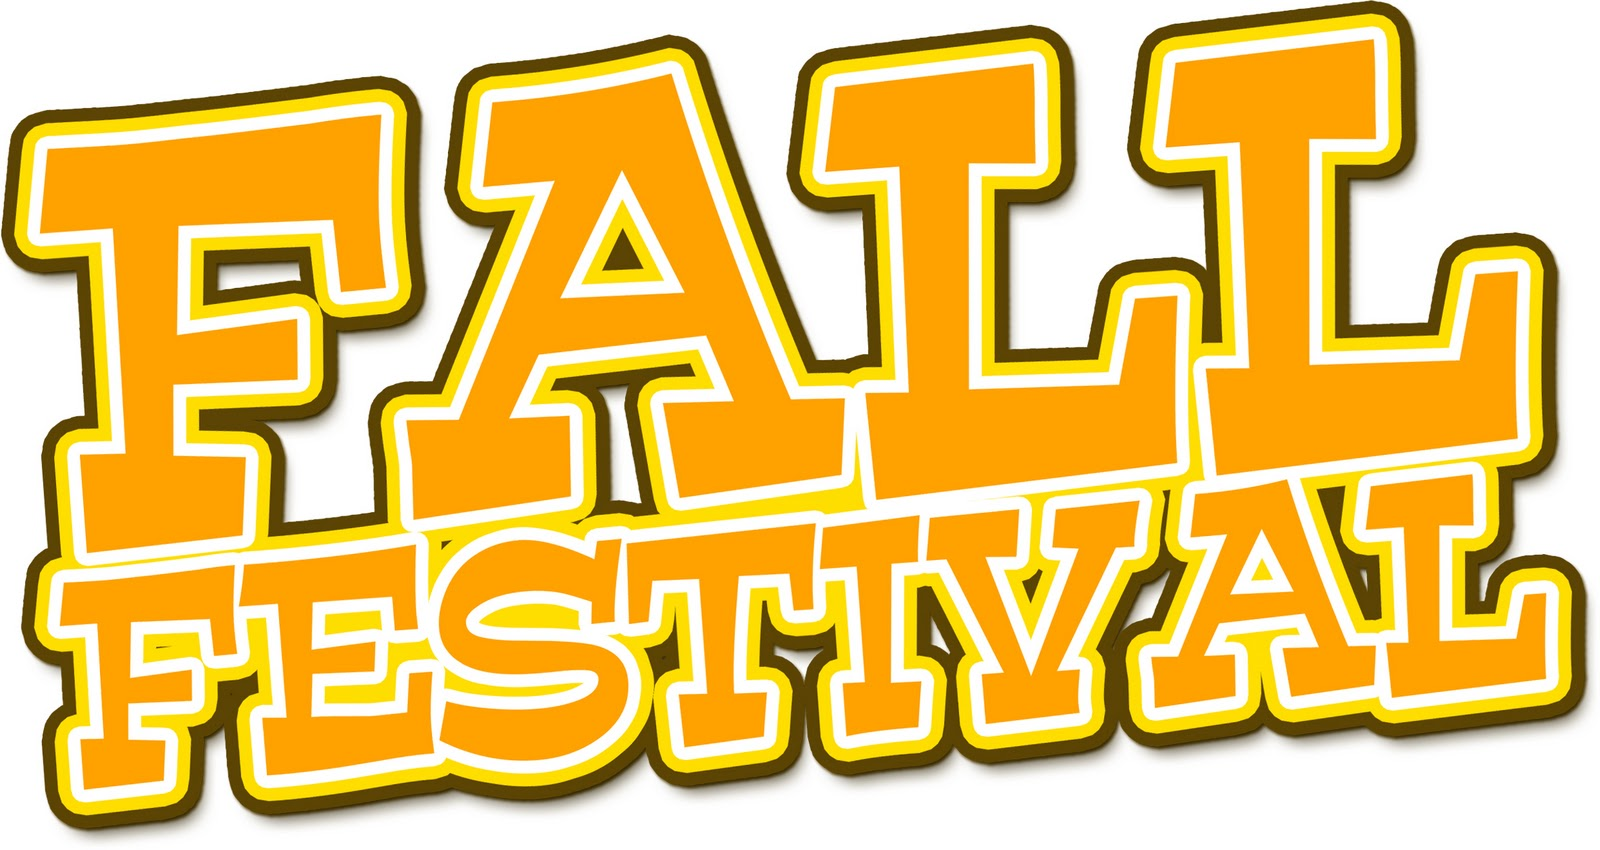 Fall festival community festival clipart